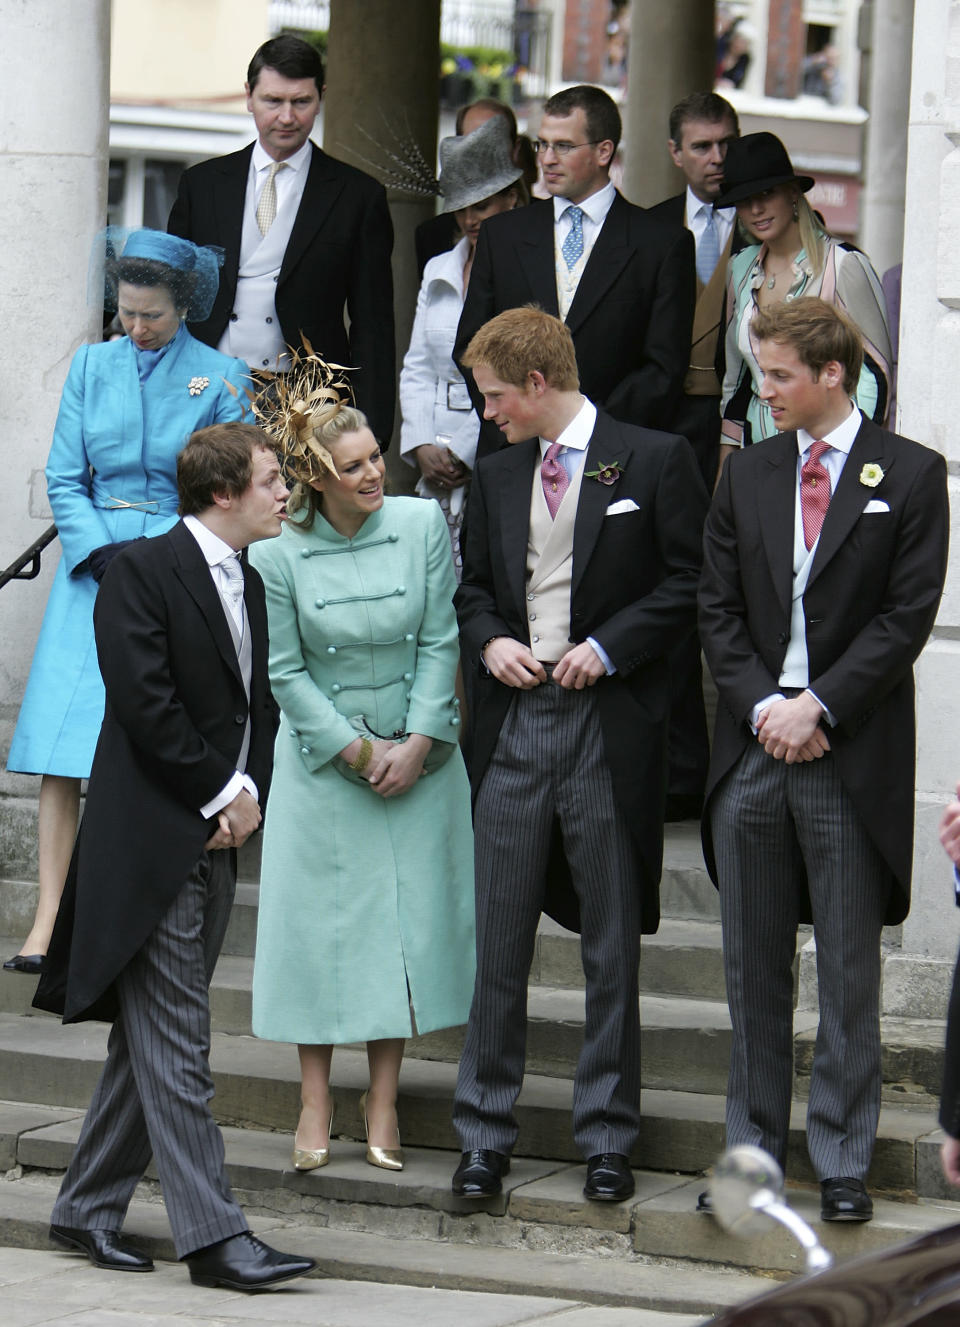 Laura and brother Tom, with Prince William and Harry at the wedding of their father Prince Charles to Laura's mother Camilla [Photo: Getty]